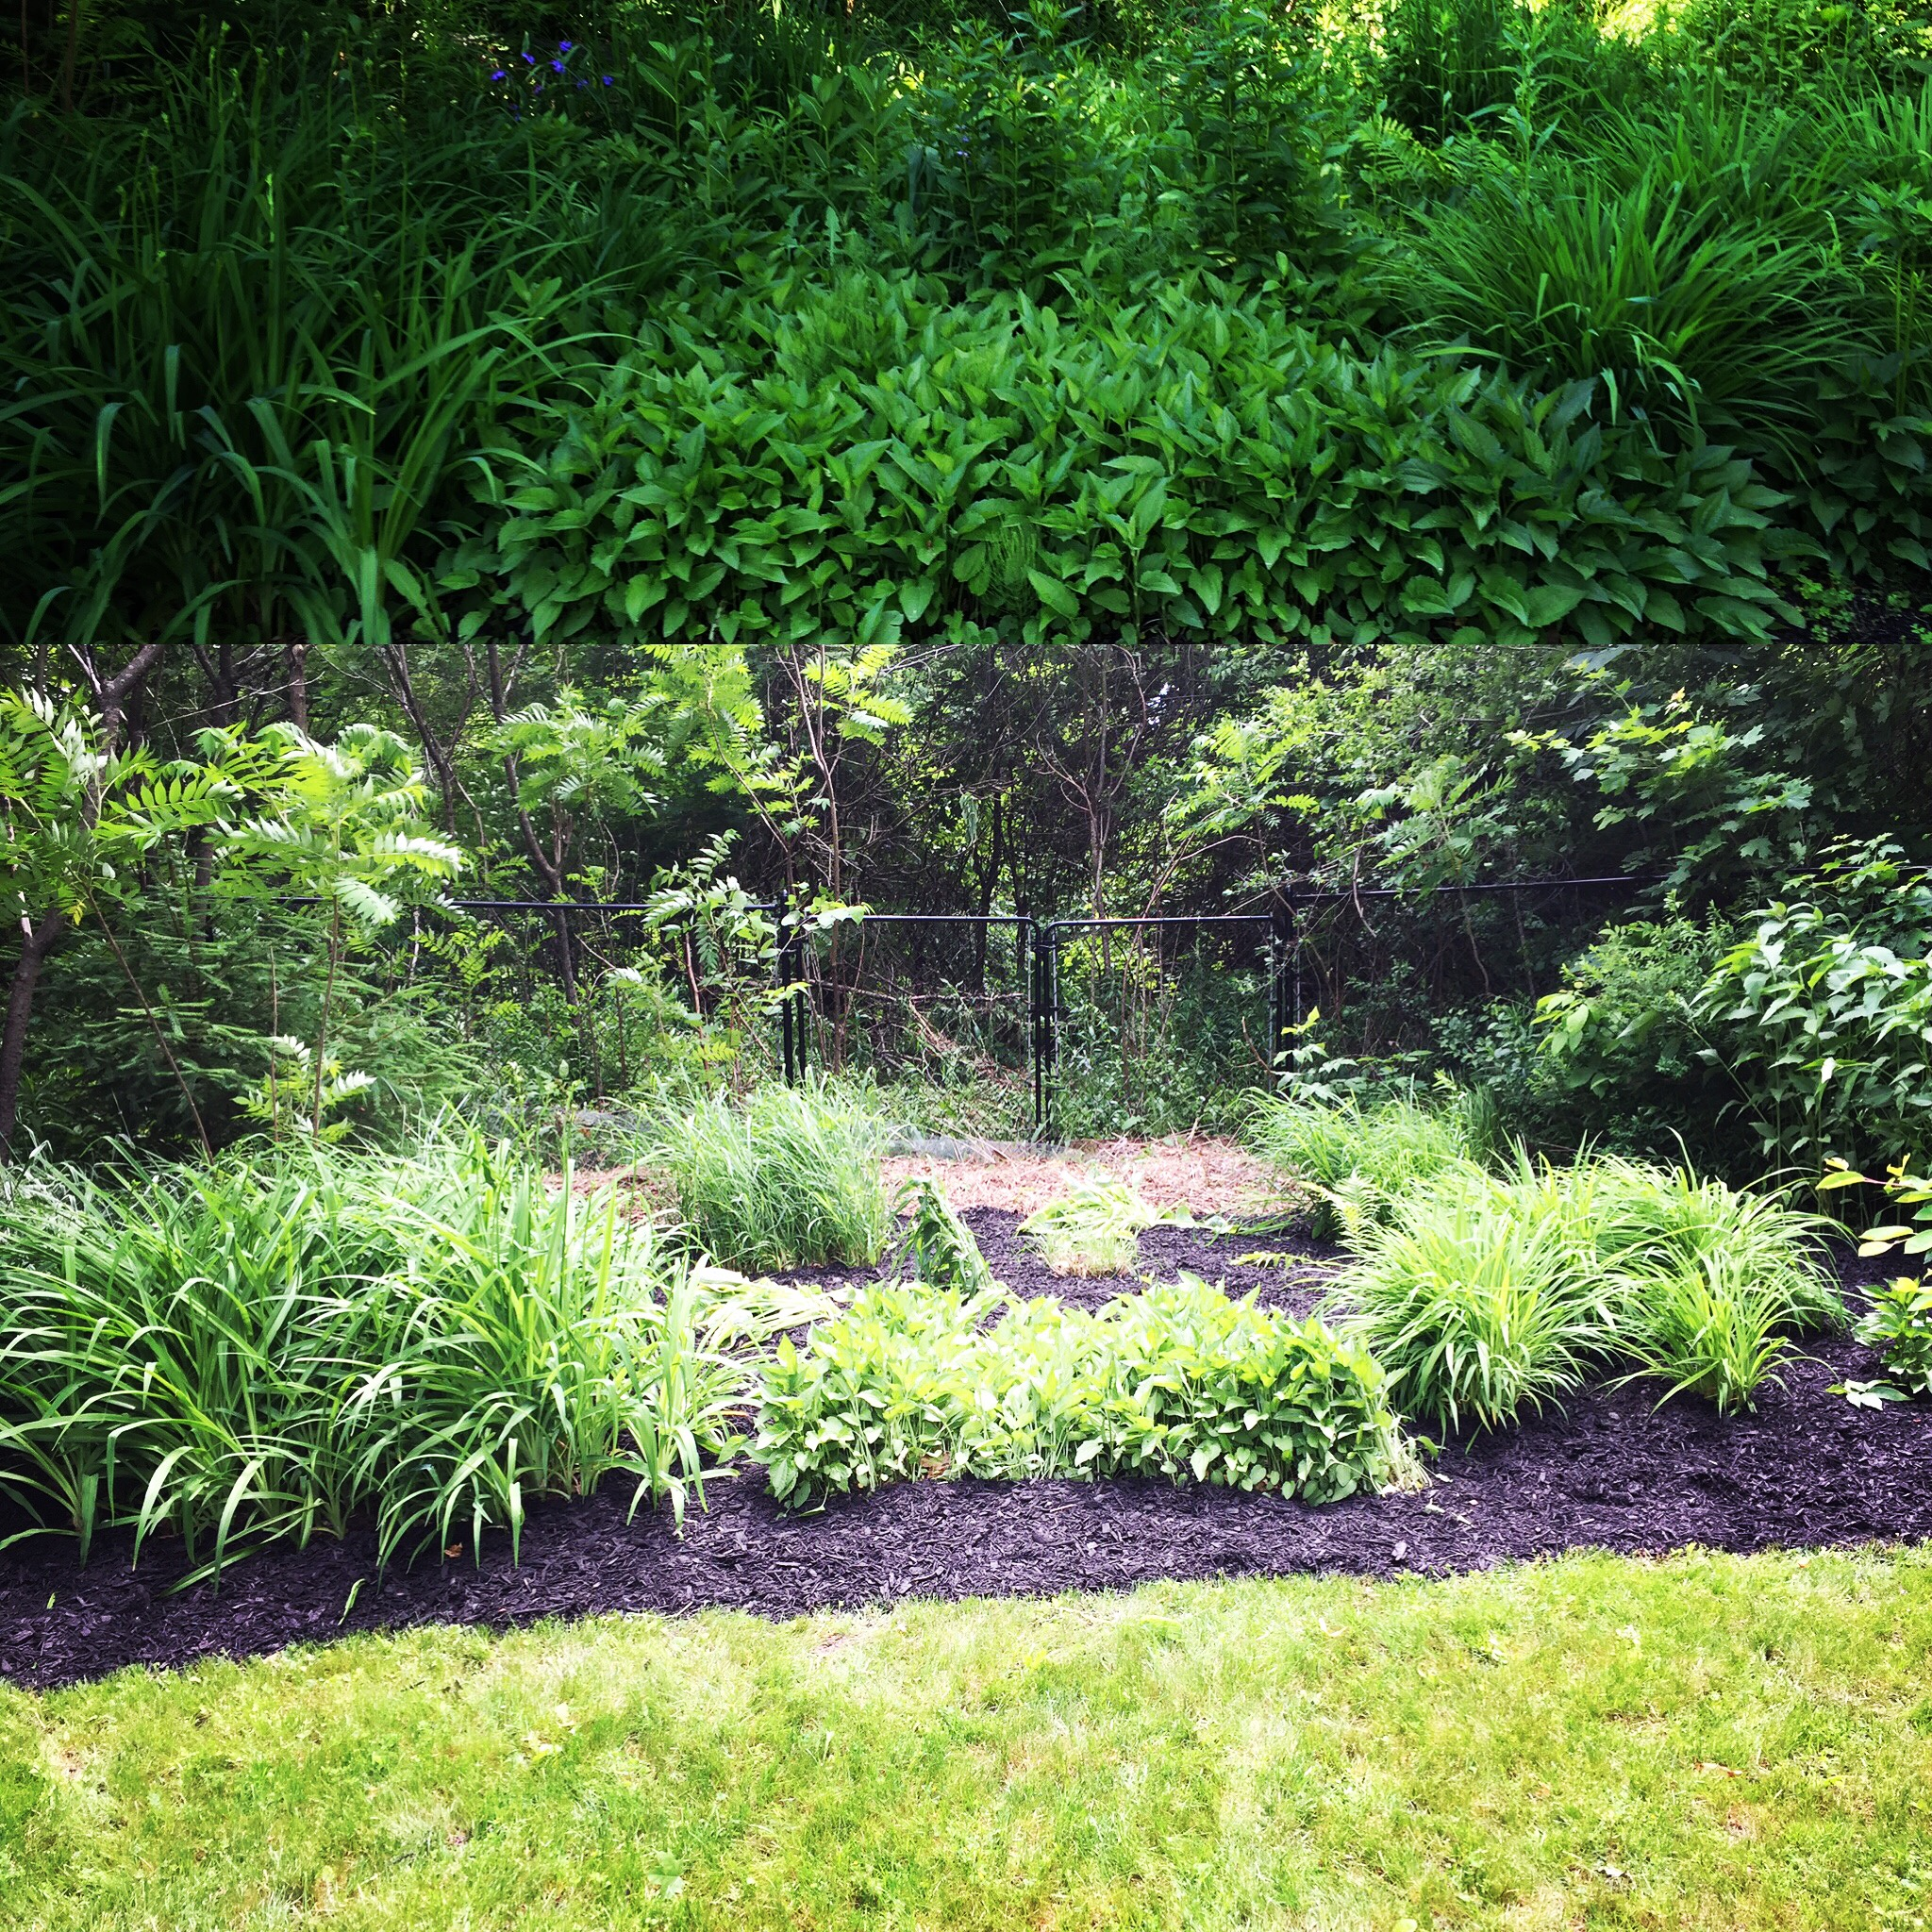 Overgrowth removal and mulching